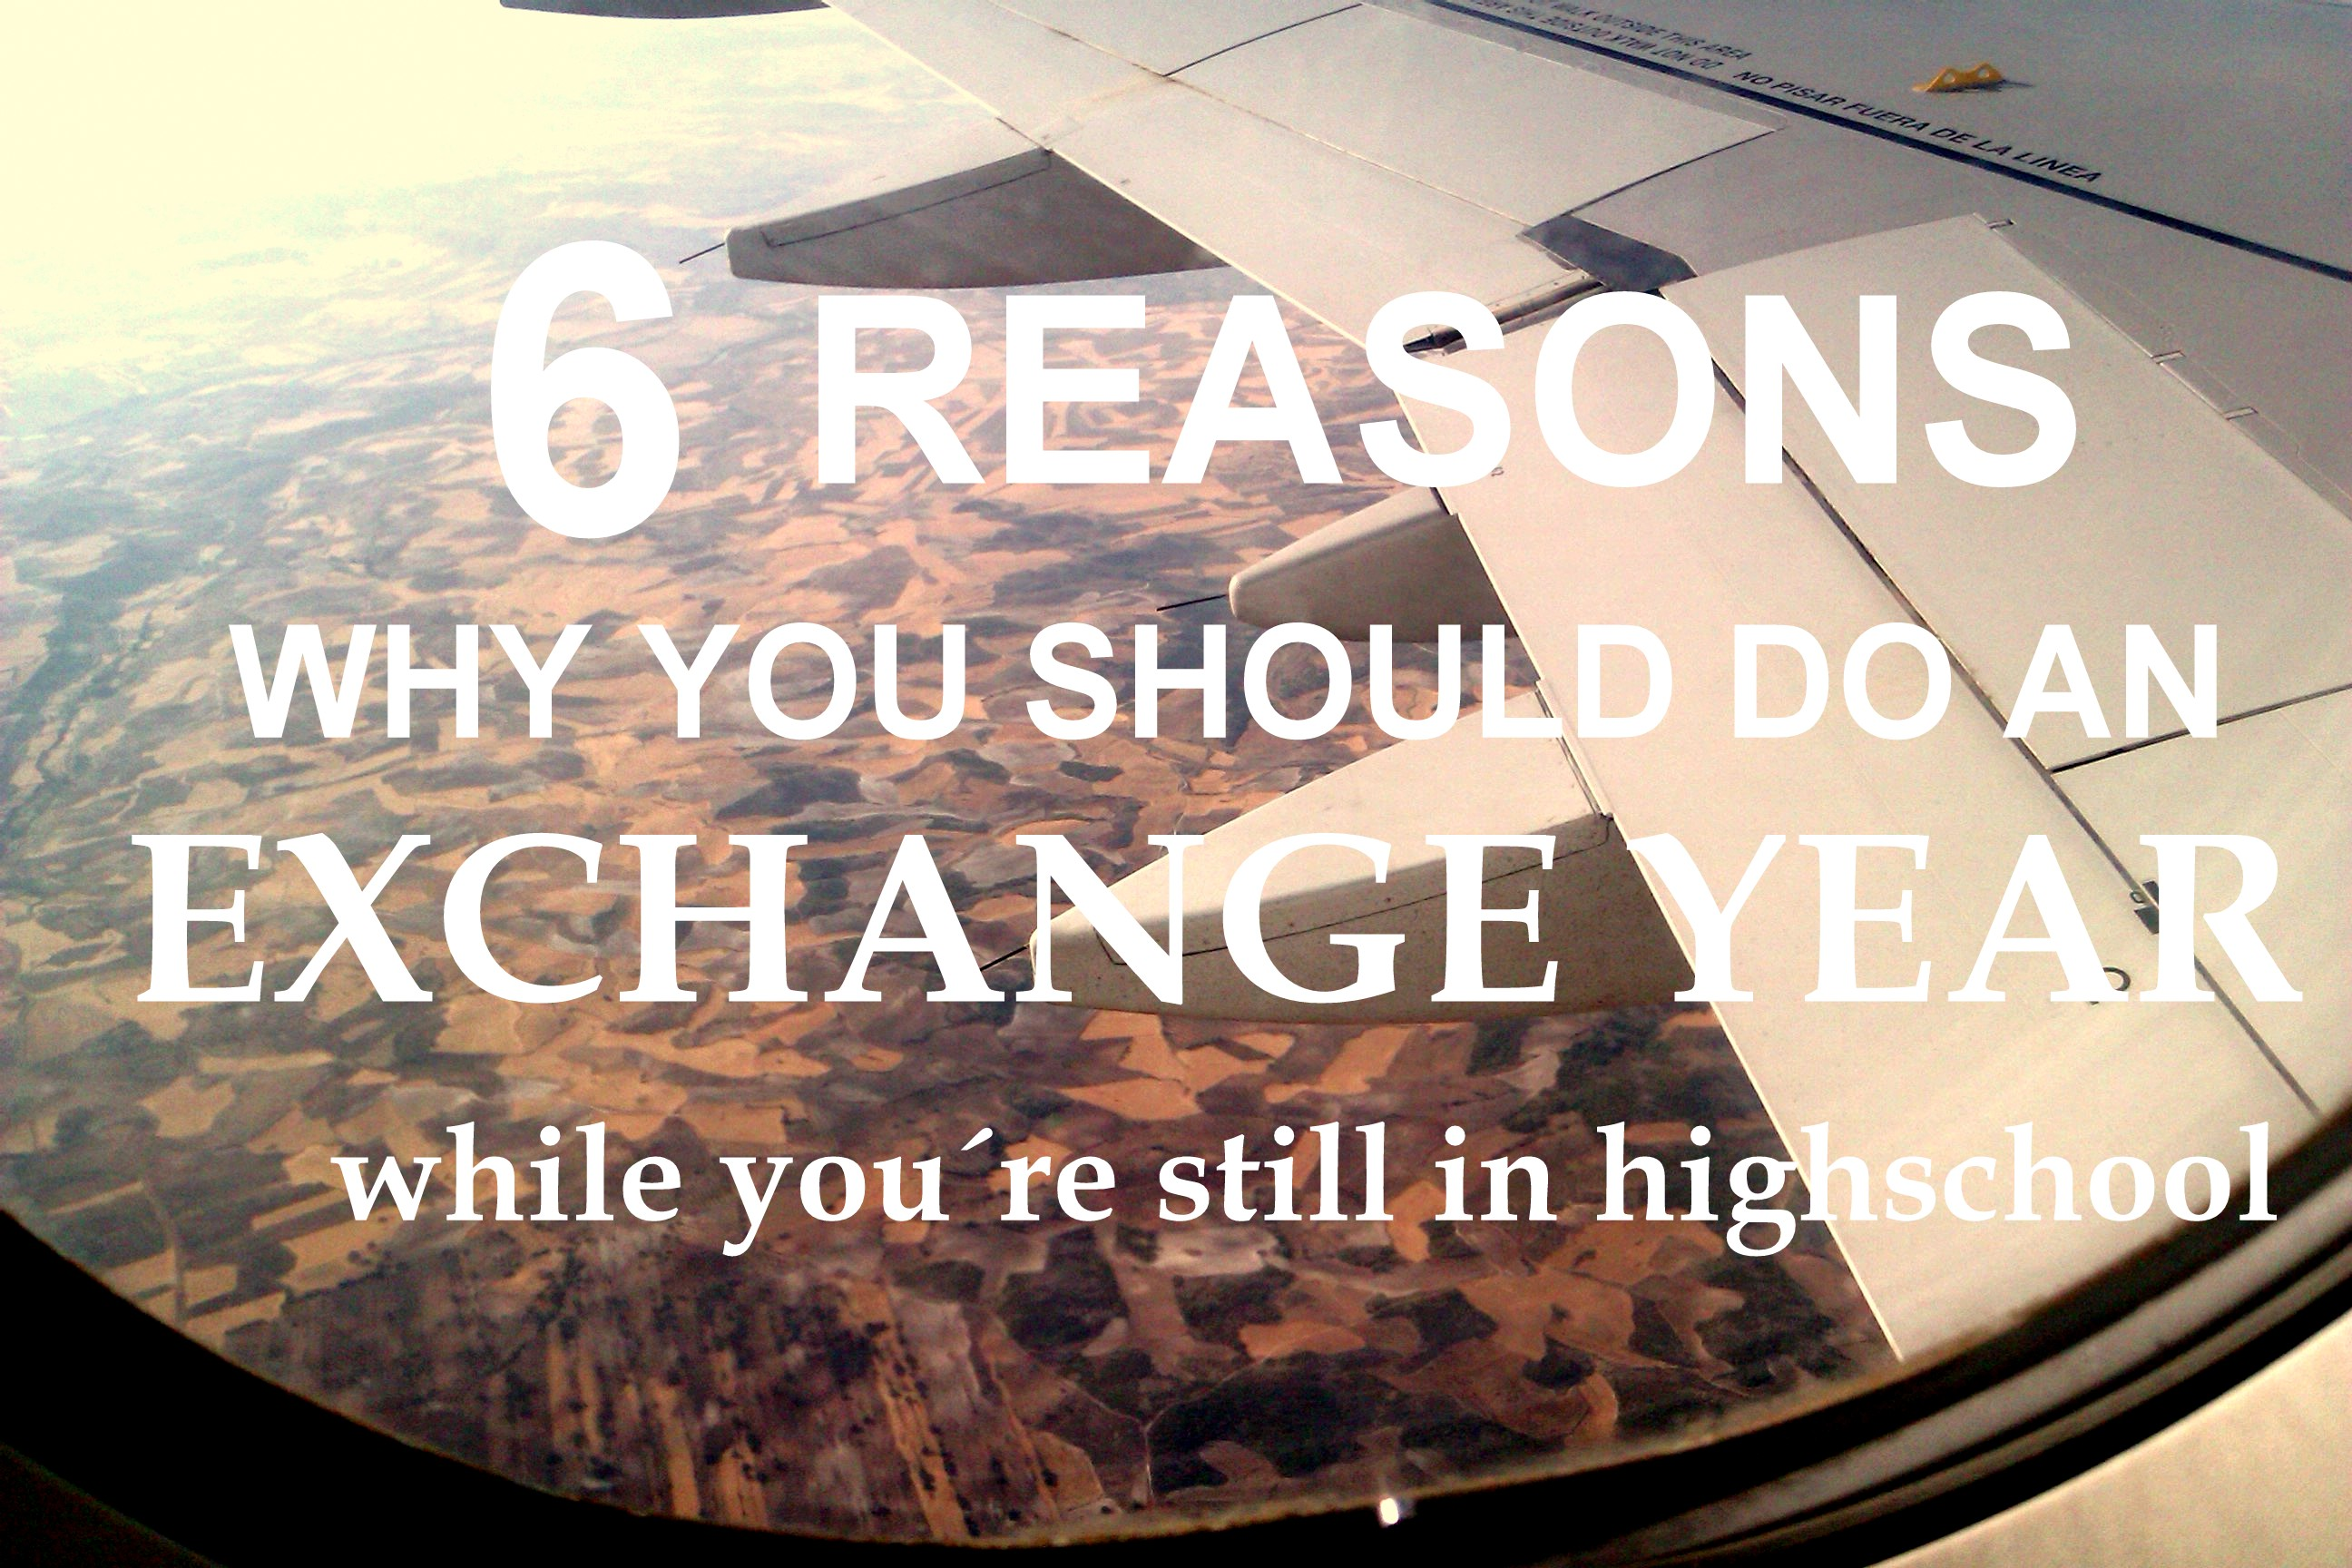 6 reasons why you should do an exchange year when you are still in highschool